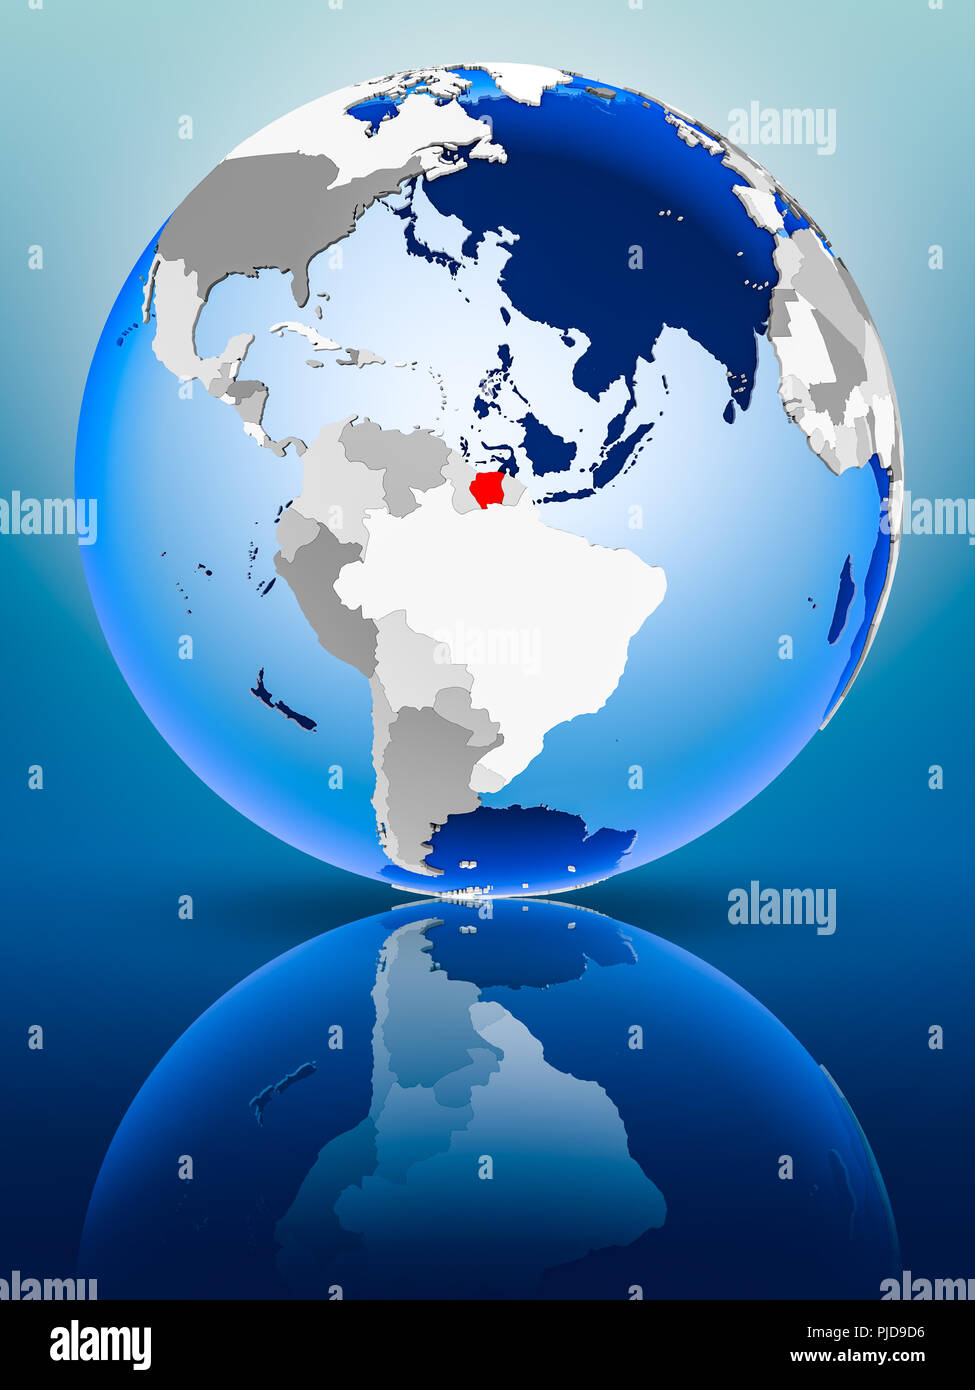 Suriname on political globe standing on reflective surface. 3D illustration. - Stock Image